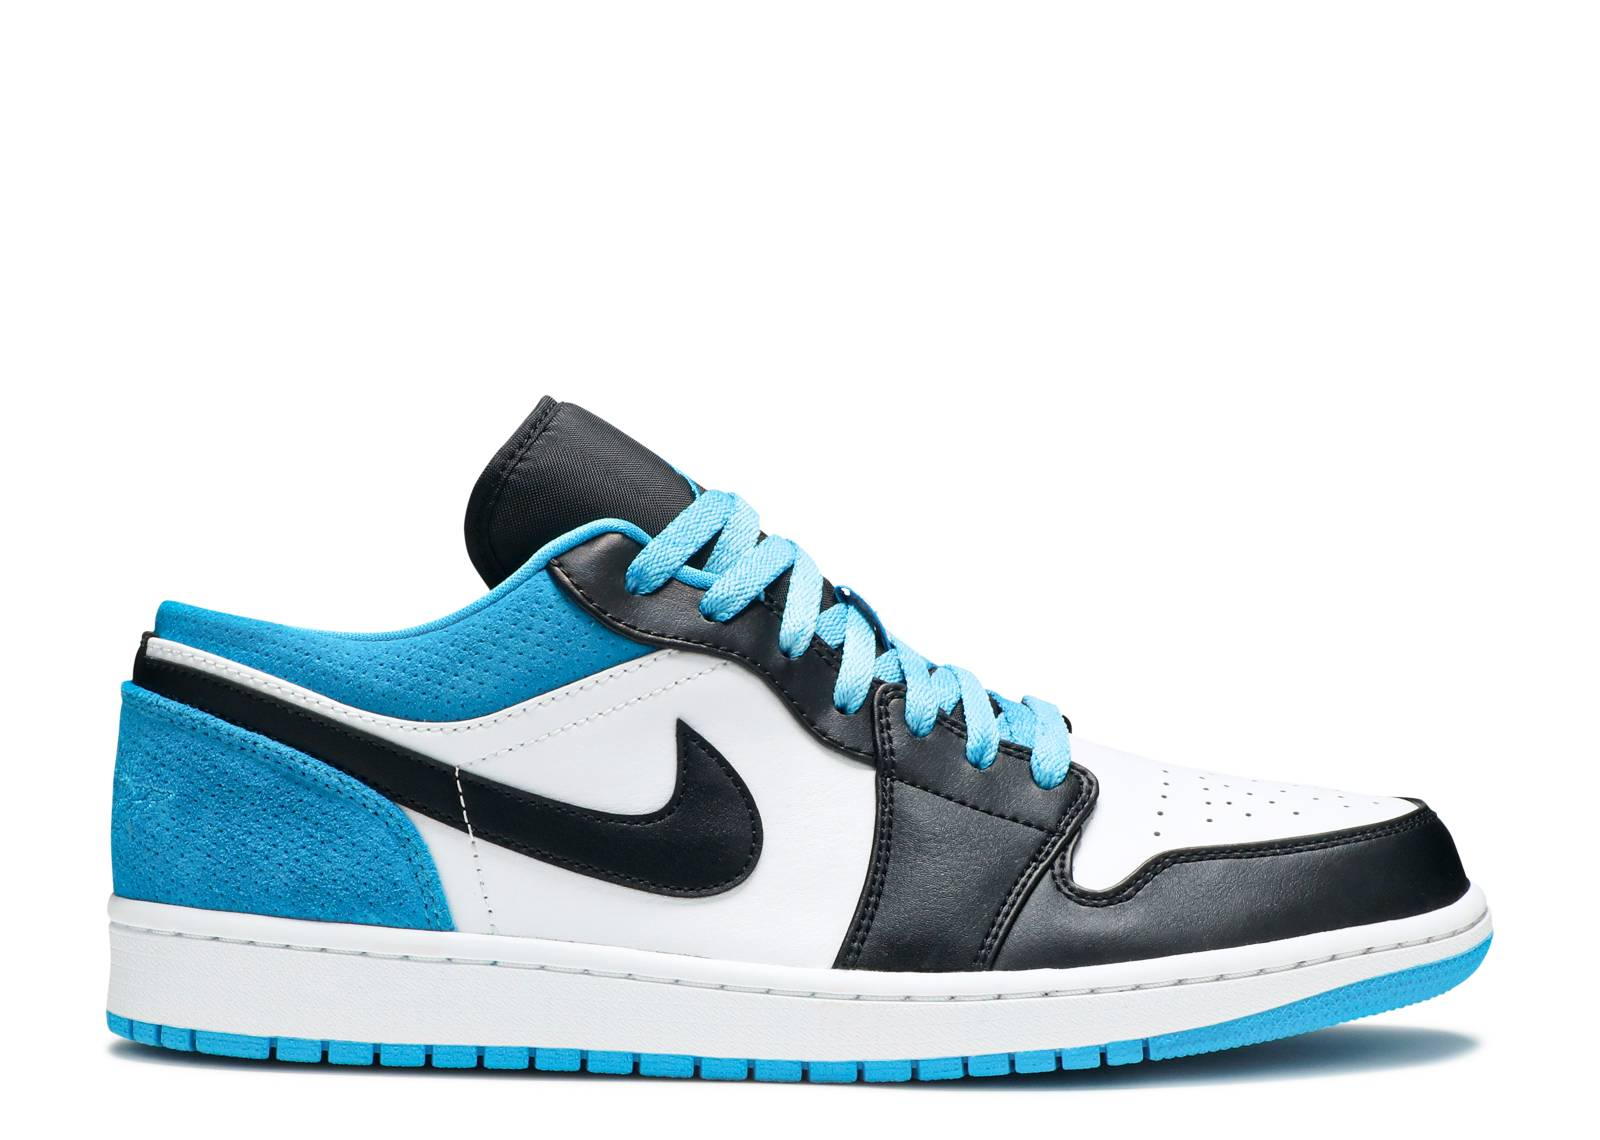 AIR JORDAN 1 LOW SE 'LASER BLUE'